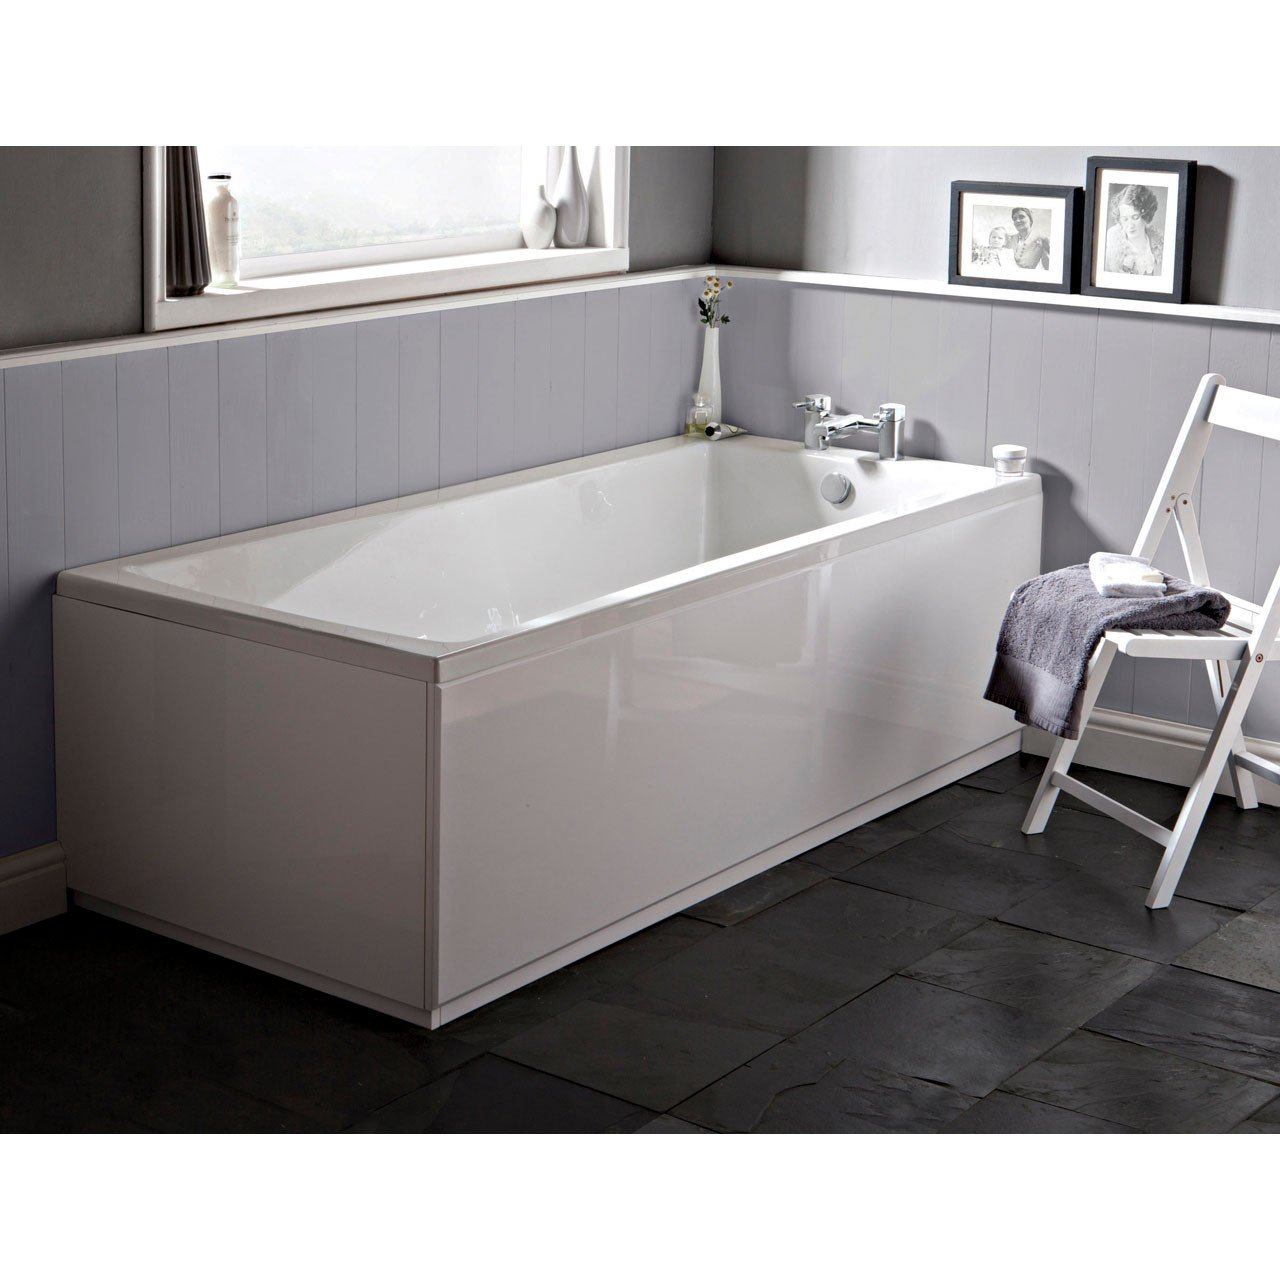 Nuie Linton 1400mm x 700mm Square Single Ended Bath - NBA404